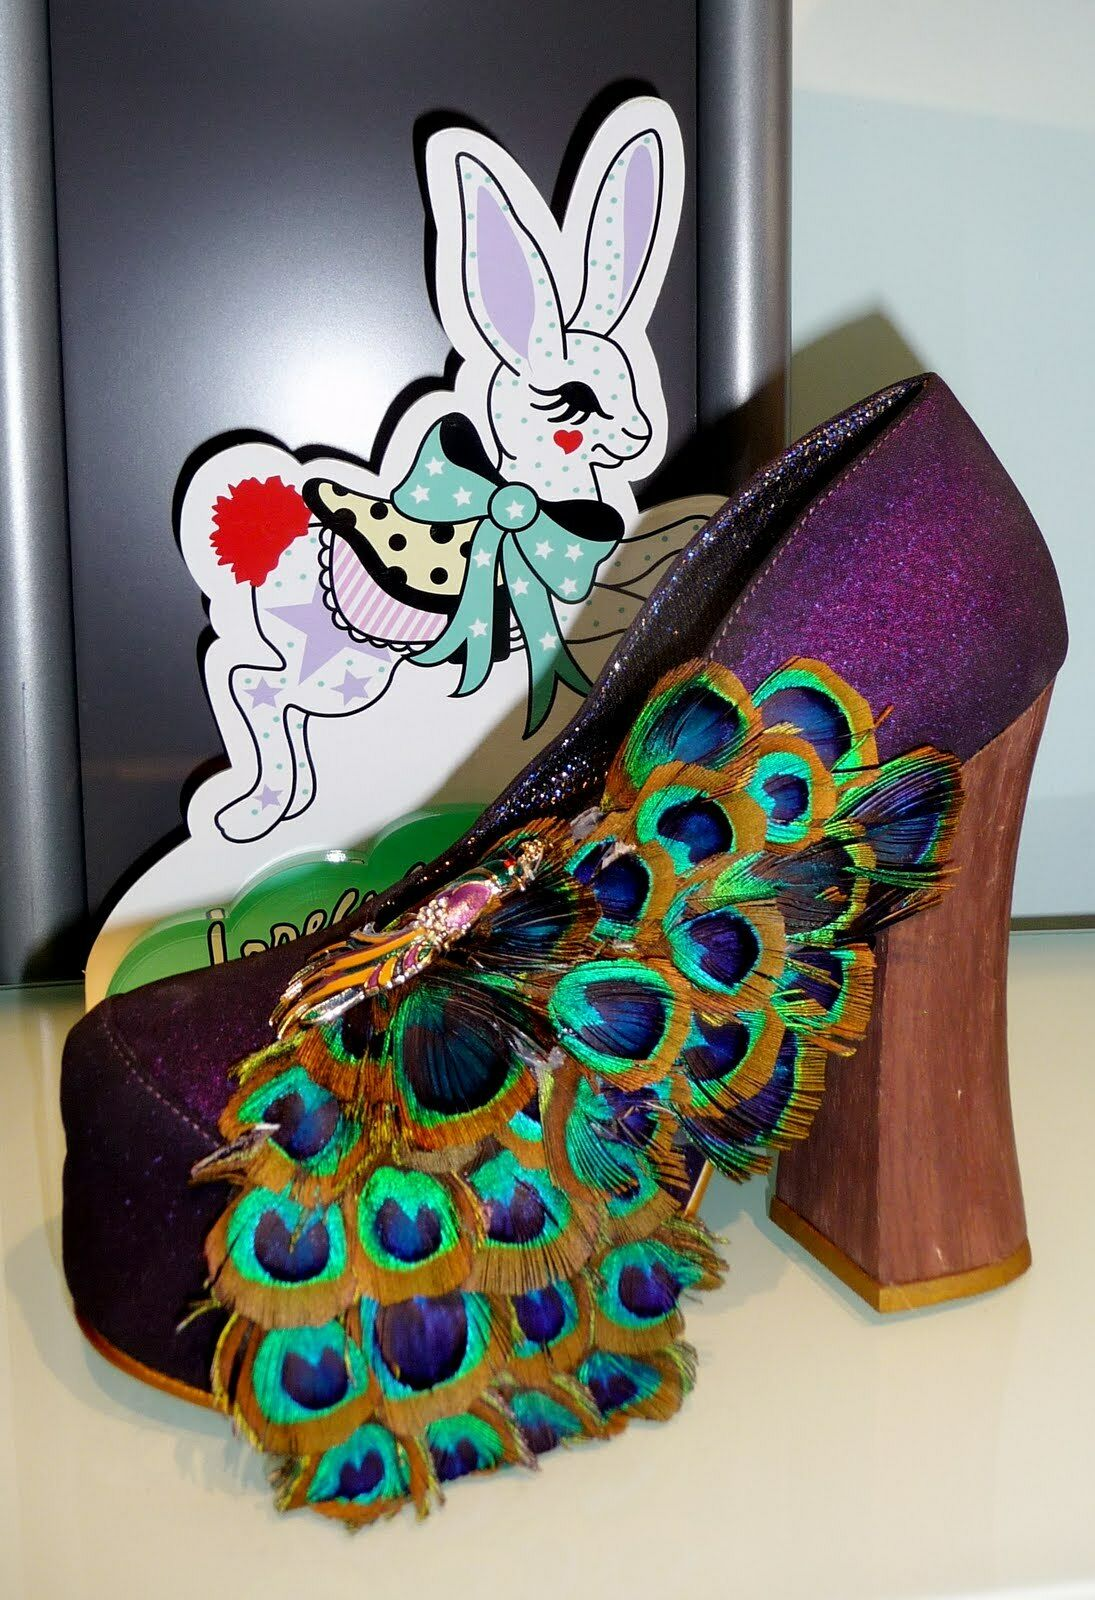 IRREGULAR CHOICE BEST OF ALL SHOES PURPLE 6.5 PUMPS PEACOCK FEATHERS NIB